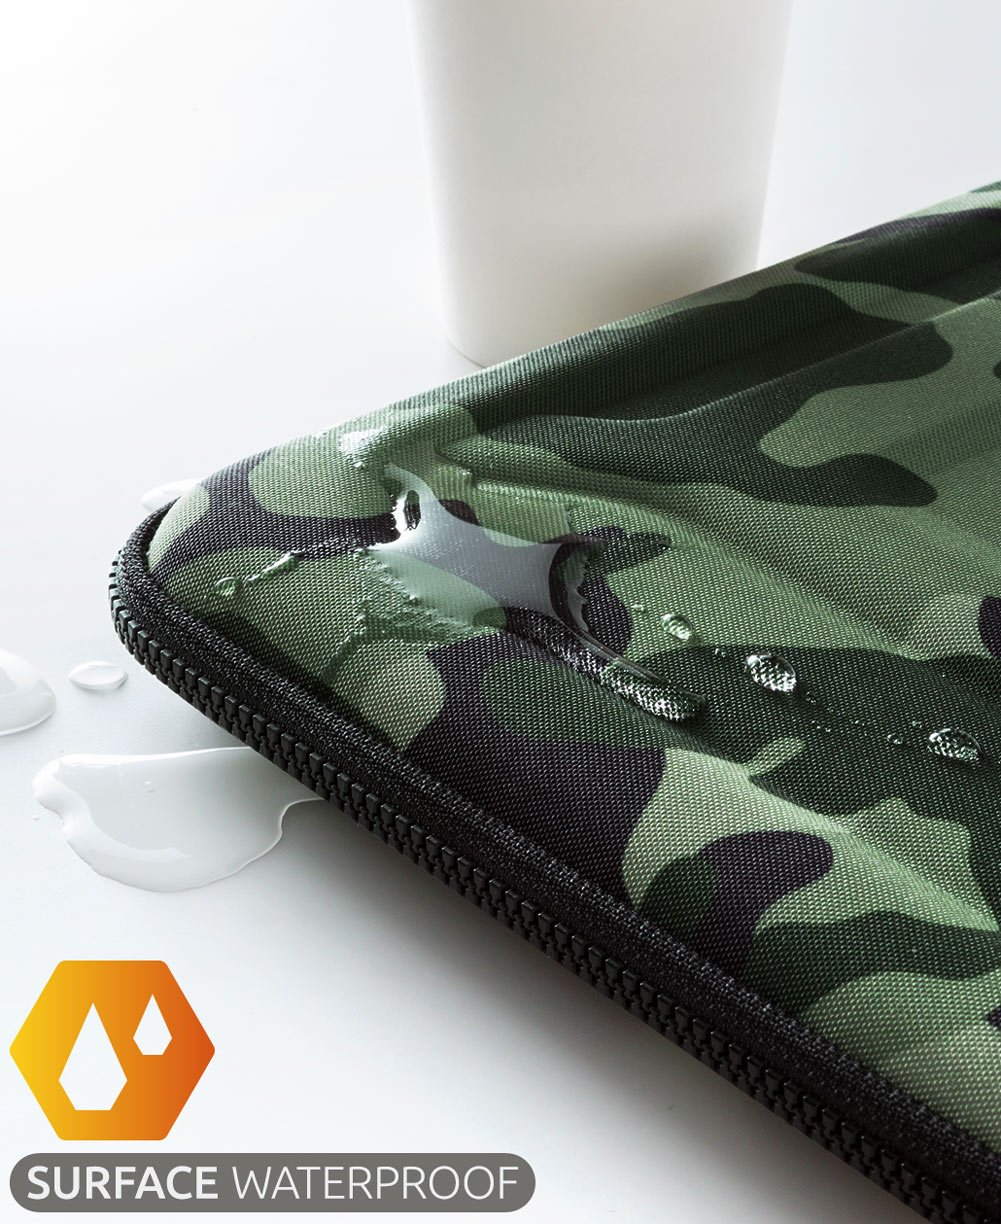 Protective Laptop Case: 13 - 13.3 Inch Computer Carrying Sleeve for 2018 New Macbook Air, Pro, Microsoft Surface or Chromebook - Padded, Waterproof and Shockproof Hard Lap Top Cover Cases - Camo by Nacuwa (Image #4)